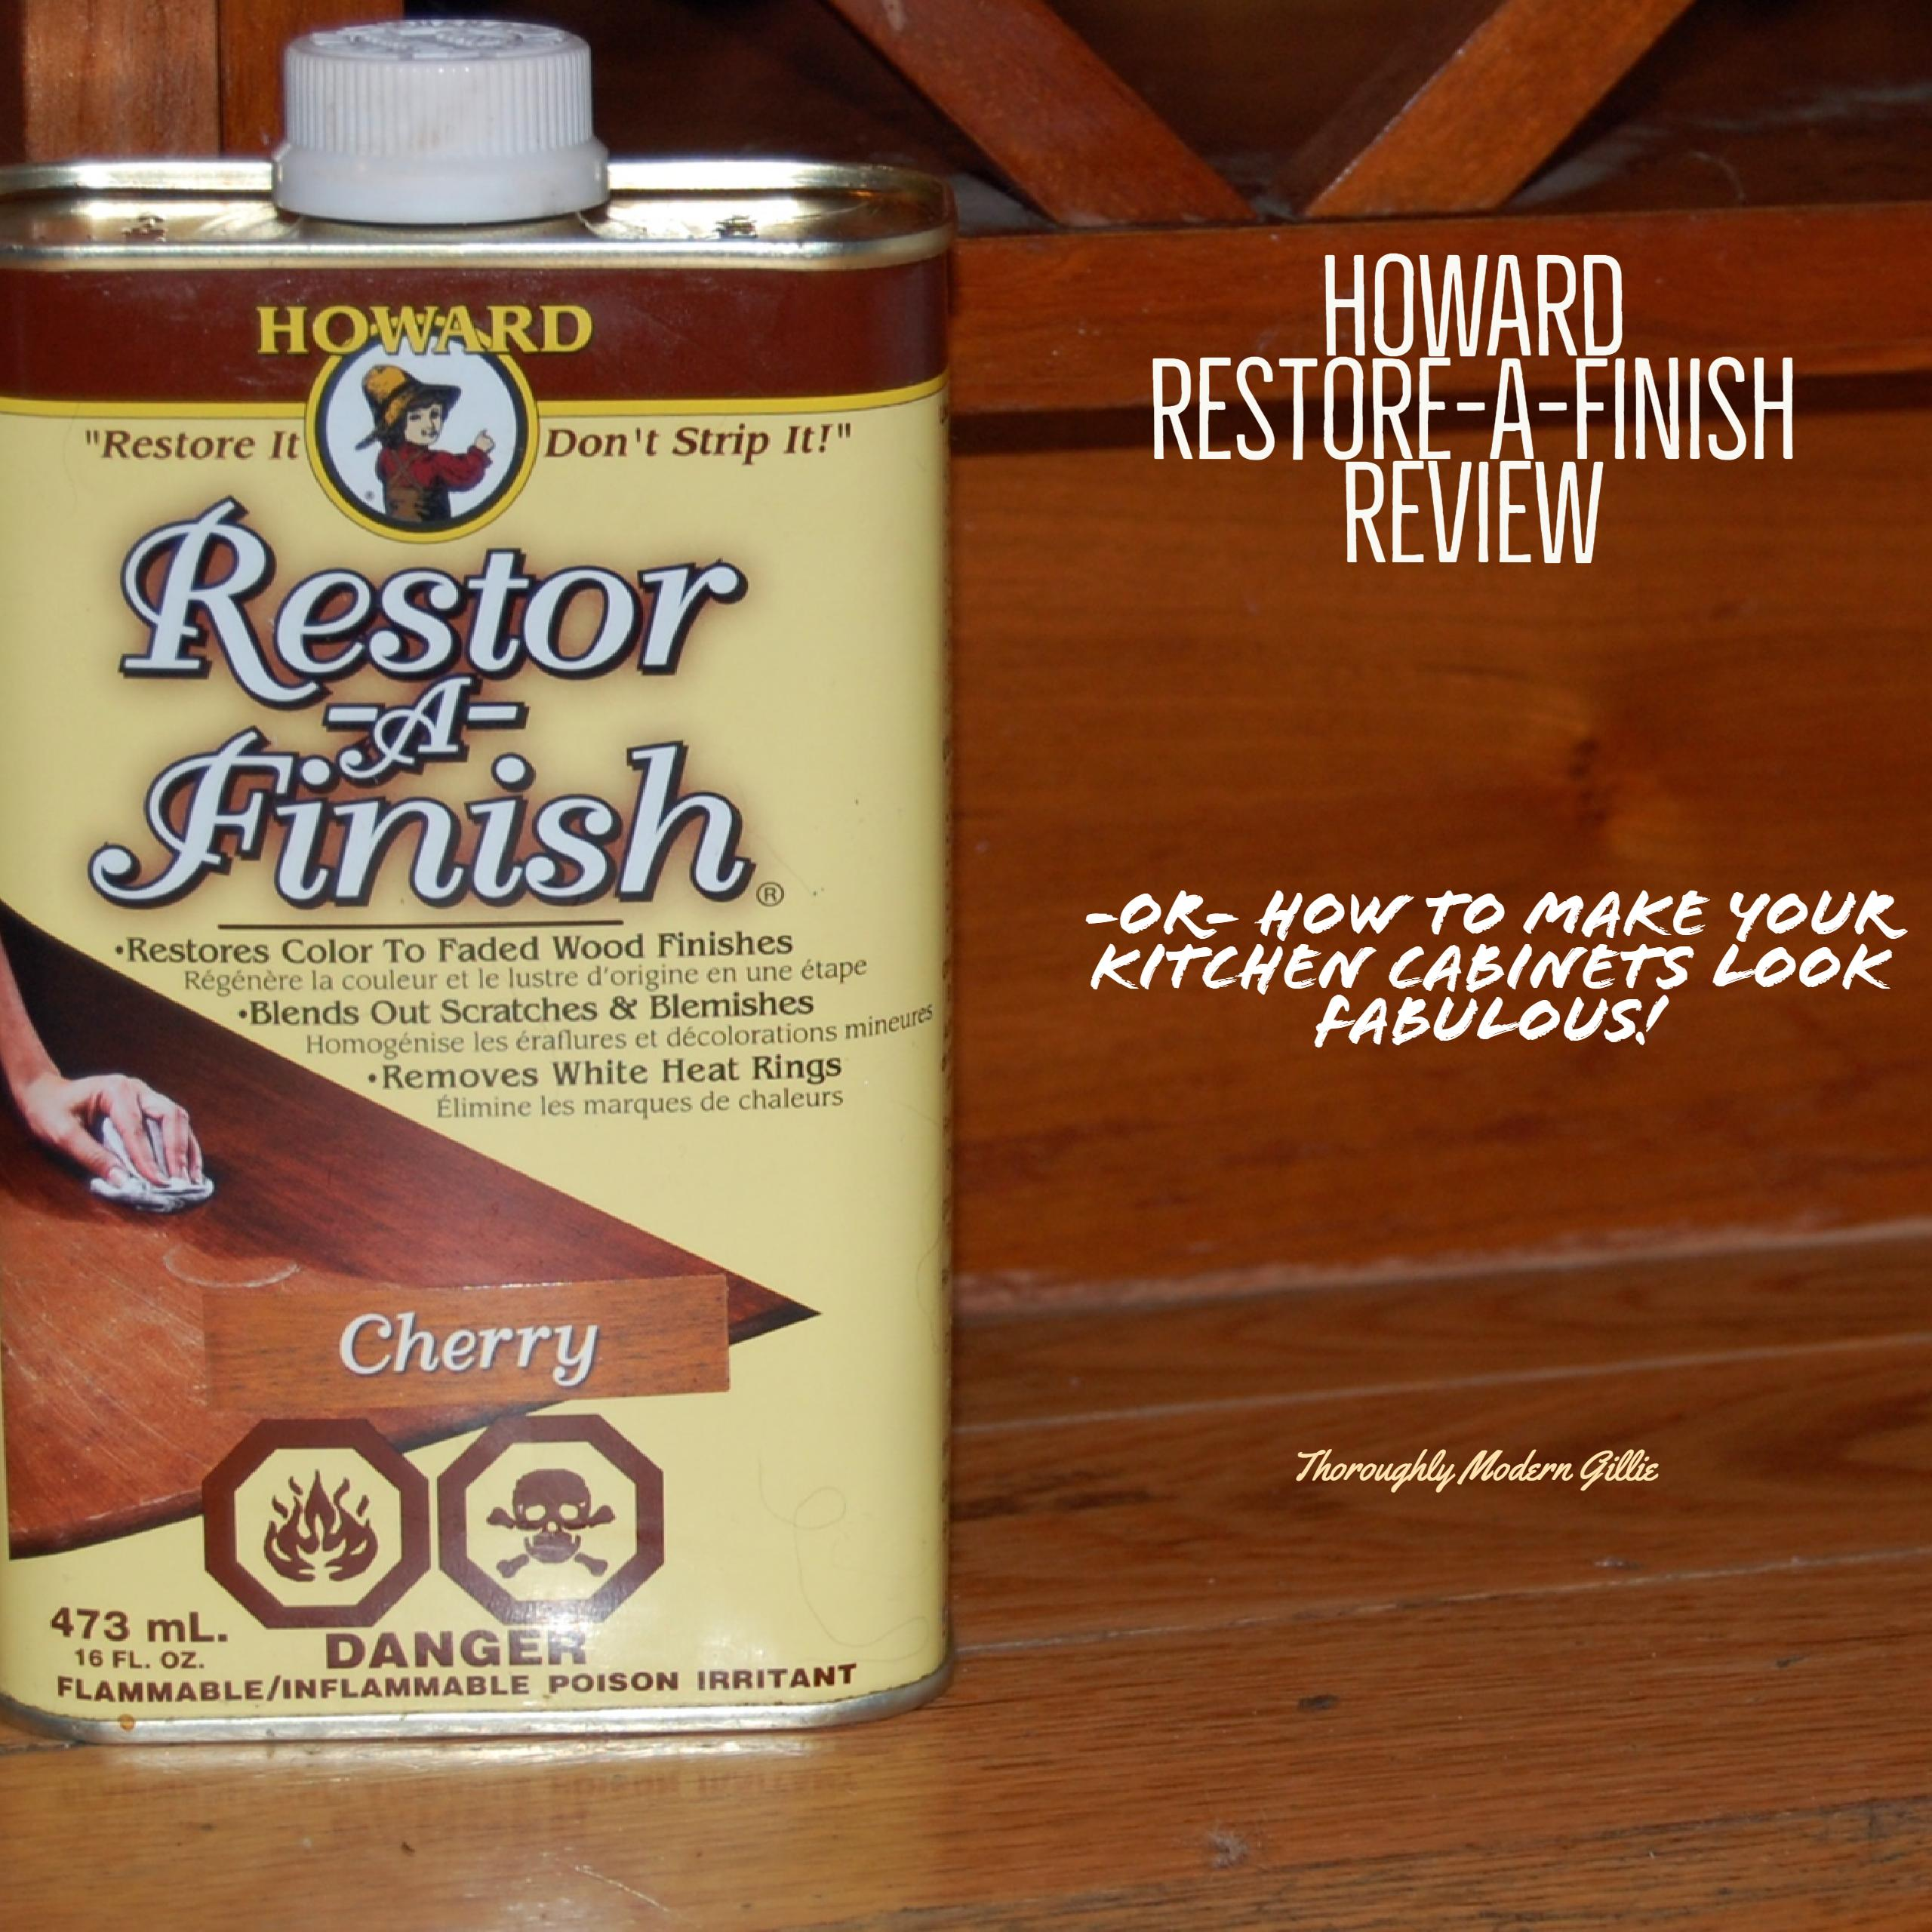 Howard restore a finish review, www.moderngillie.com